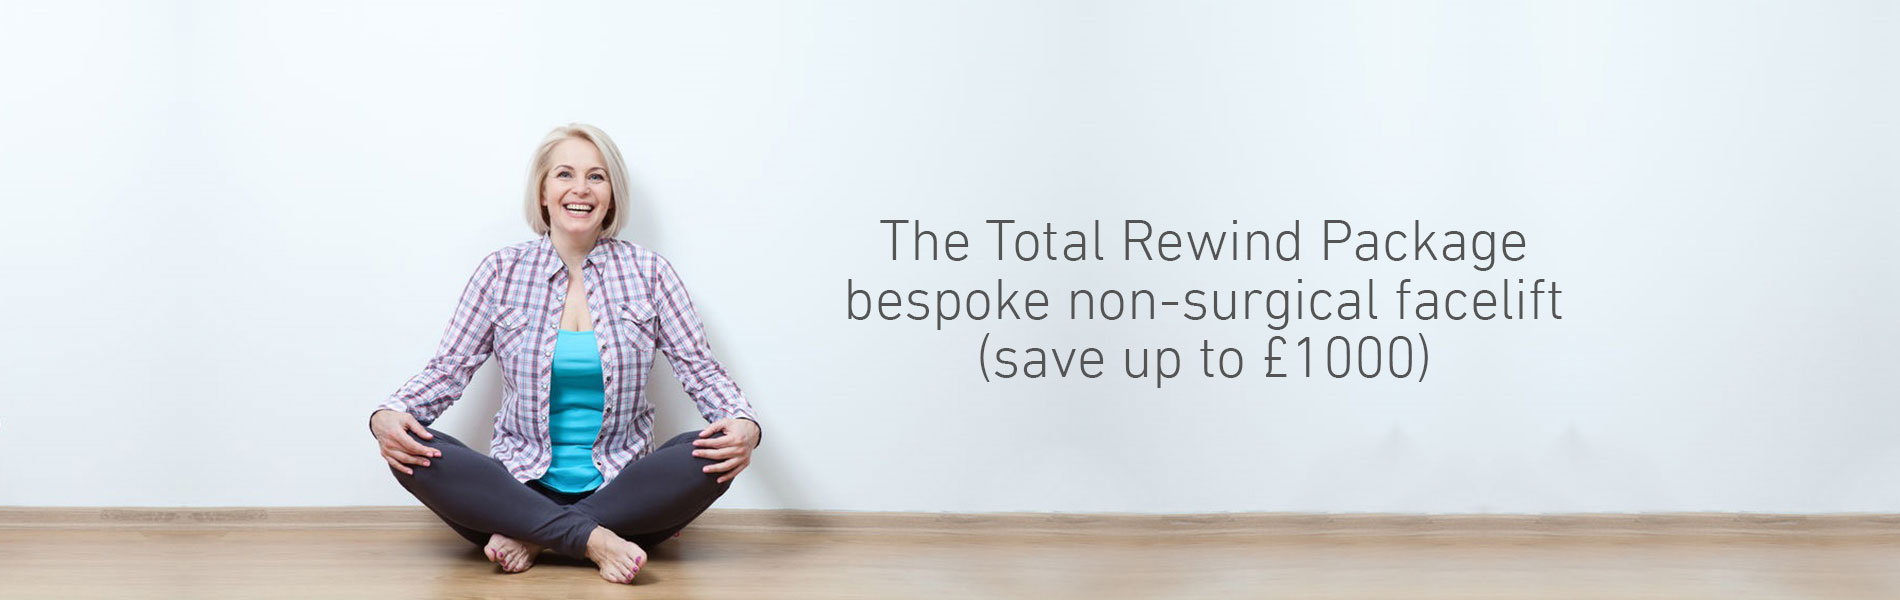 The-Total-Rewind-Package---bespoke-non-surgical-facelift-(save-up-to-£1000) Top Aesthetics Clinic in Hampshire - CJA Aesthetics, Southampton